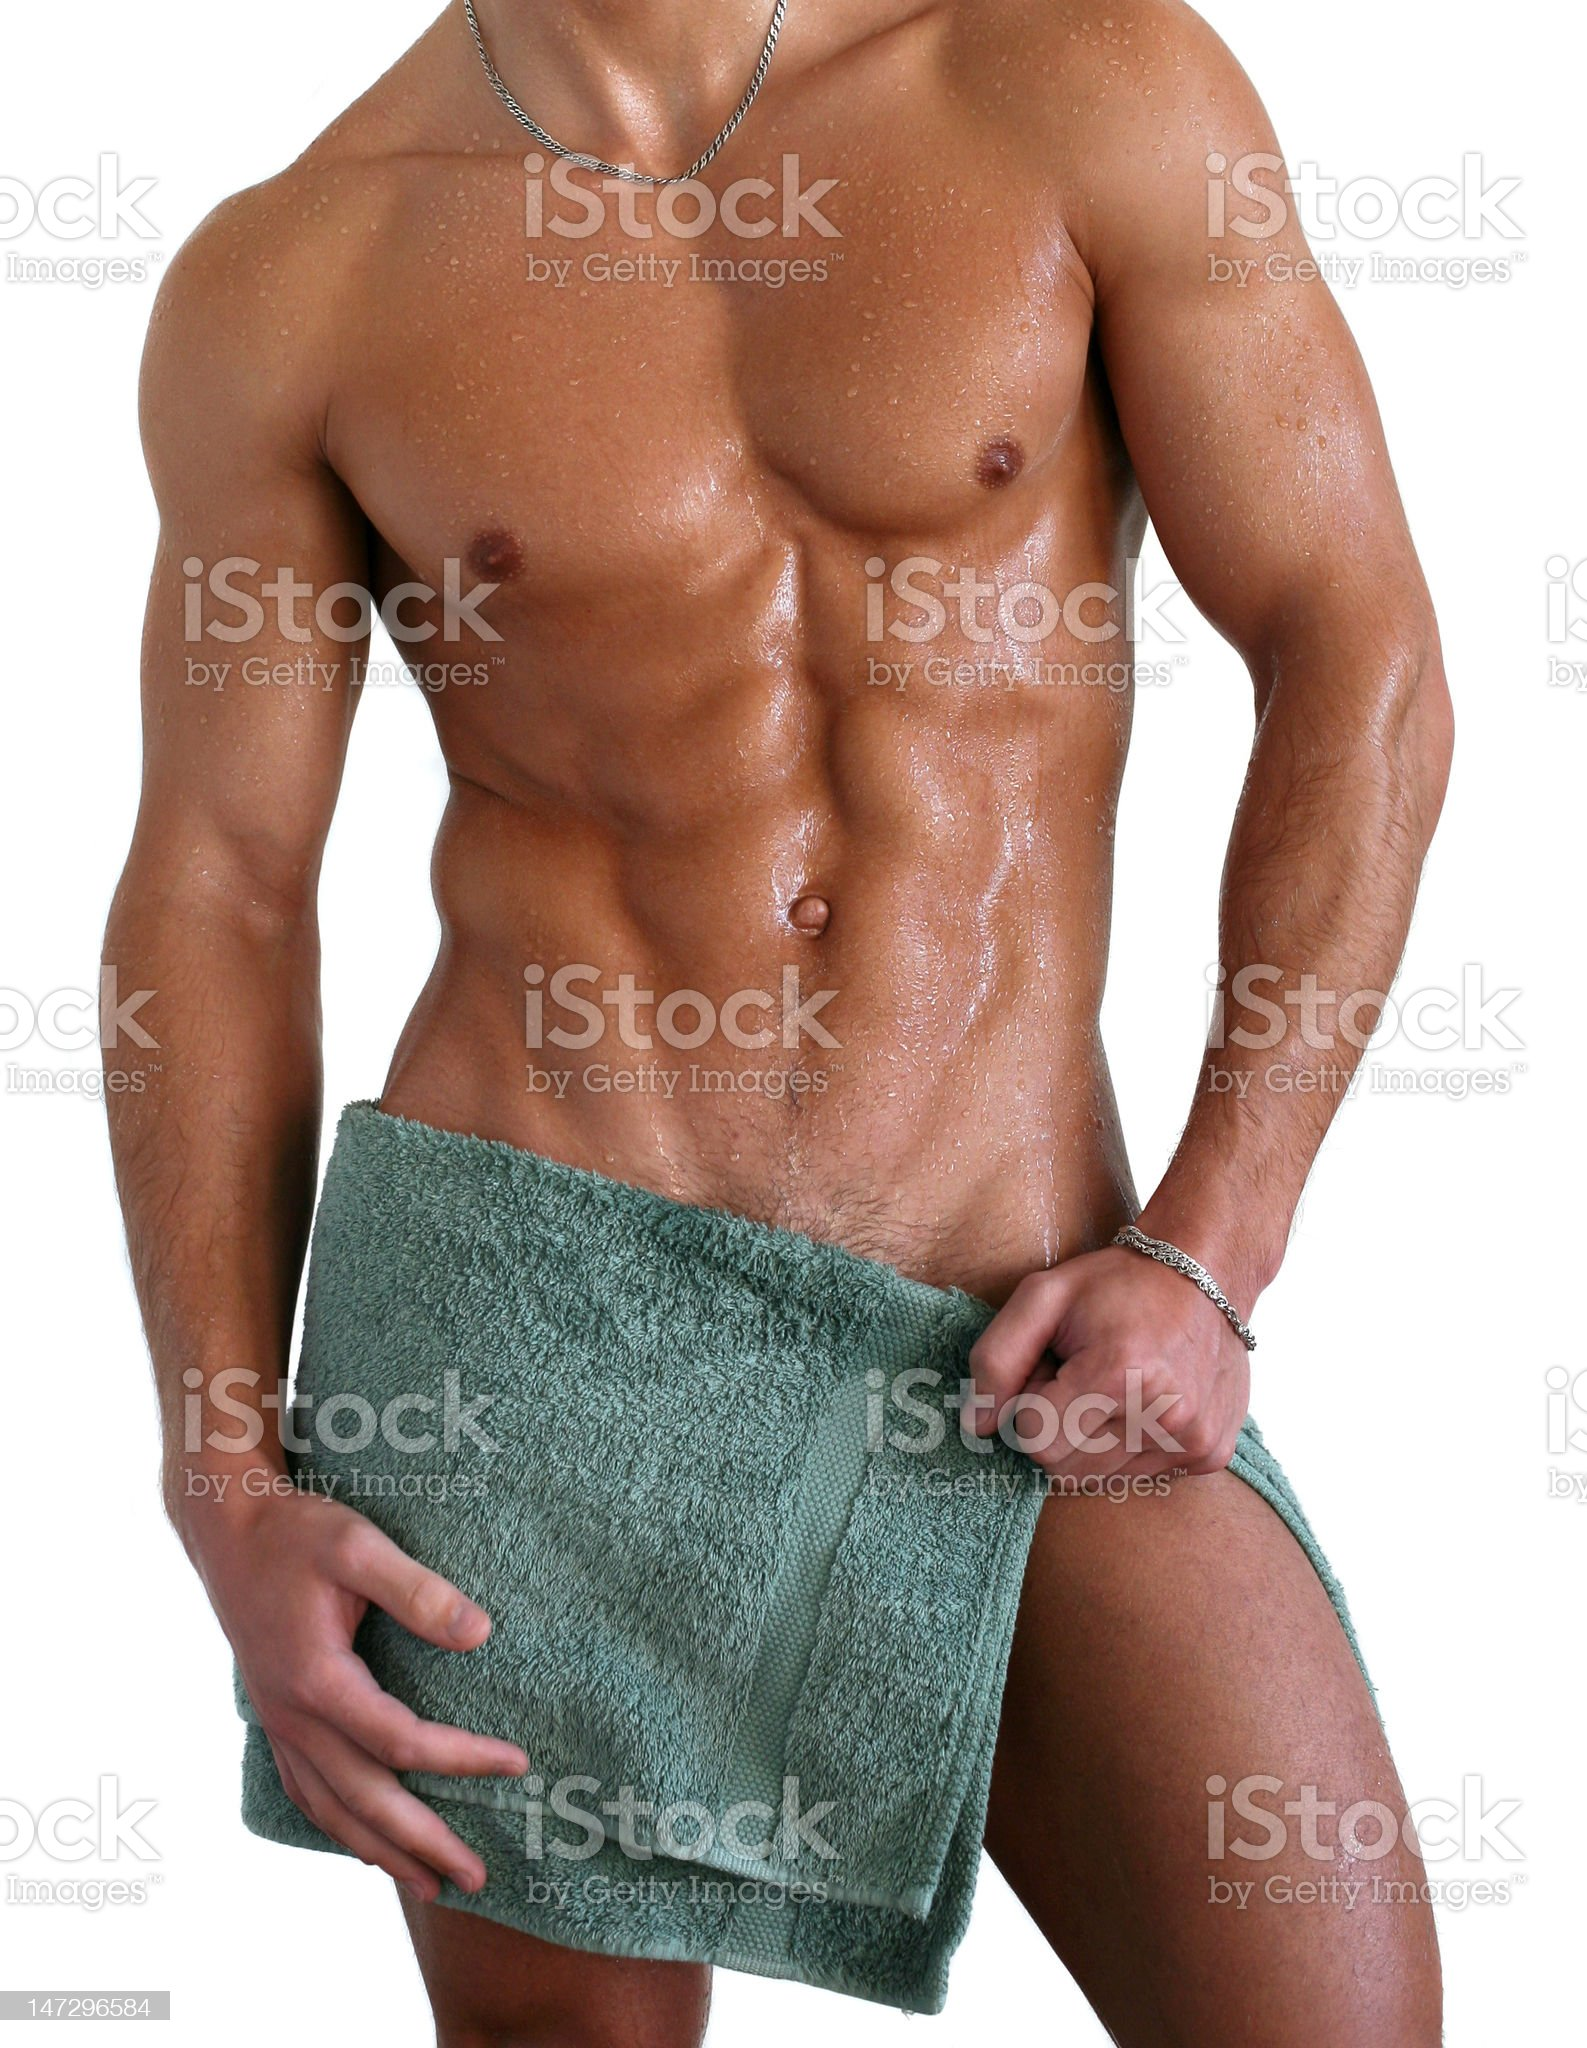 Wet Muscular Torso Wrapped in Towel royalty-free stock photo